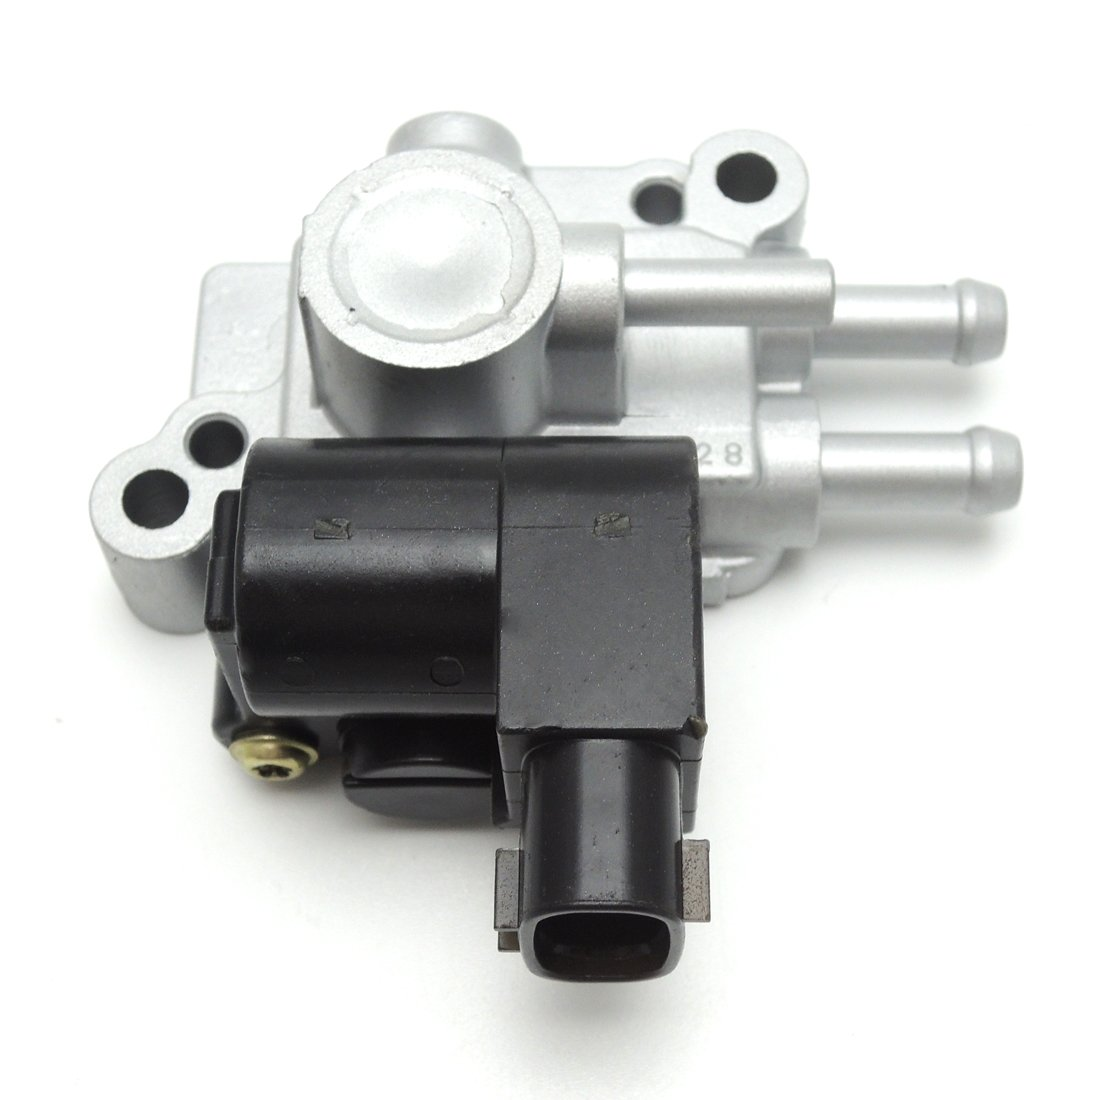 Idle Air Control IAC Valve for Honda Accord EX LX SE 1998 1999 2000 2001 2002, 36460PAAL21 by Issyzone